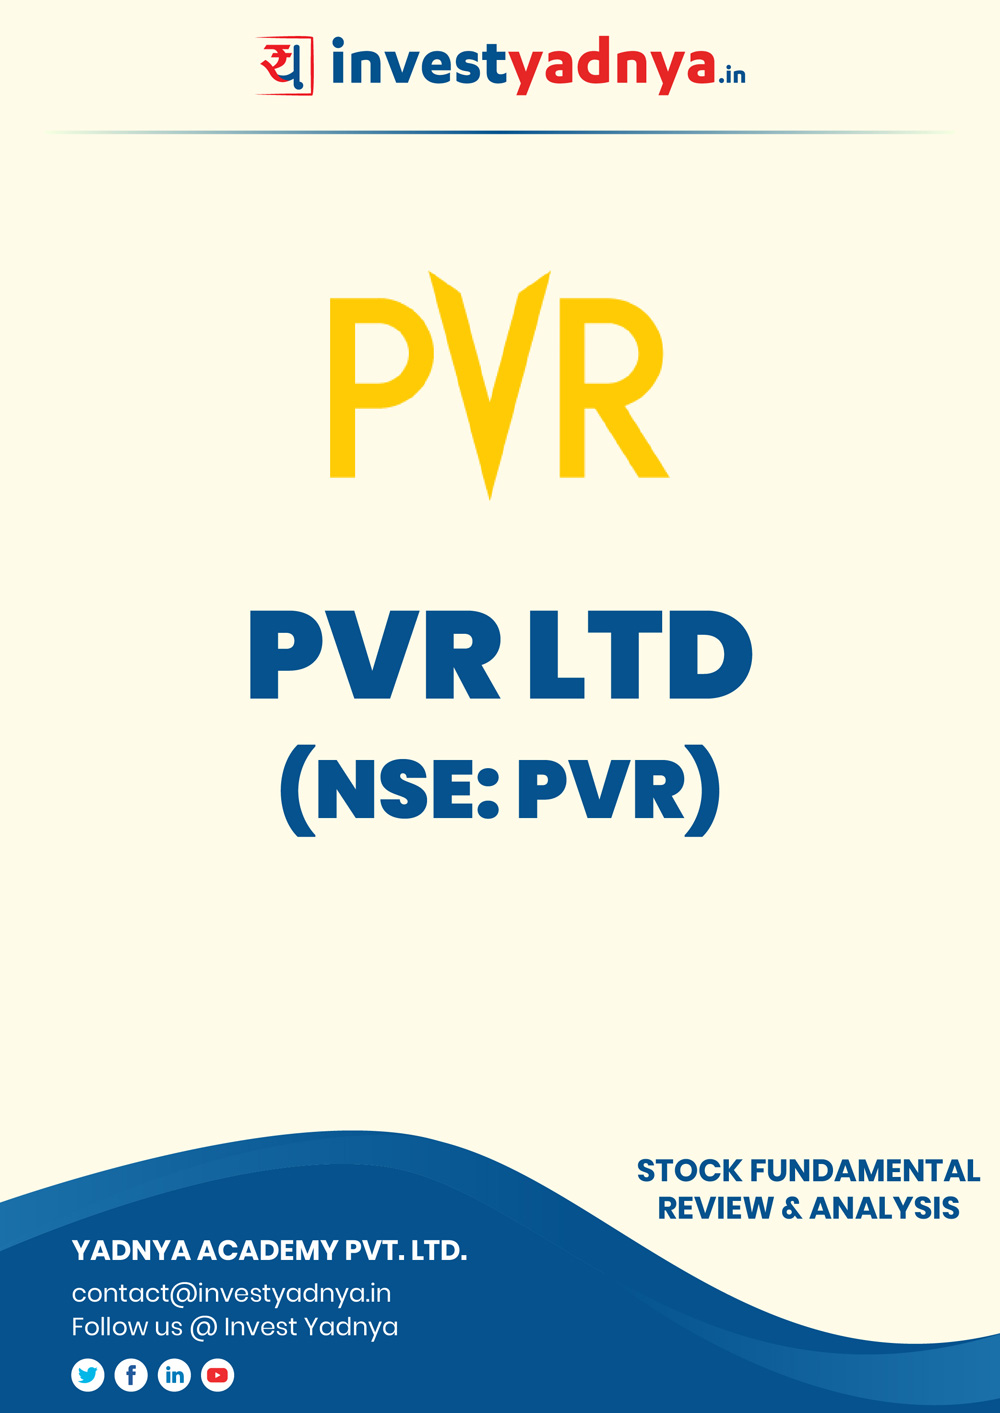 PVR Ltd. company/Stock Review & Analysis based on Q12019-20 and FY2018-19 data. The book contains Fundamental Analysis of the company considering both Quantitative (Financial) and Qualitative Parameters.